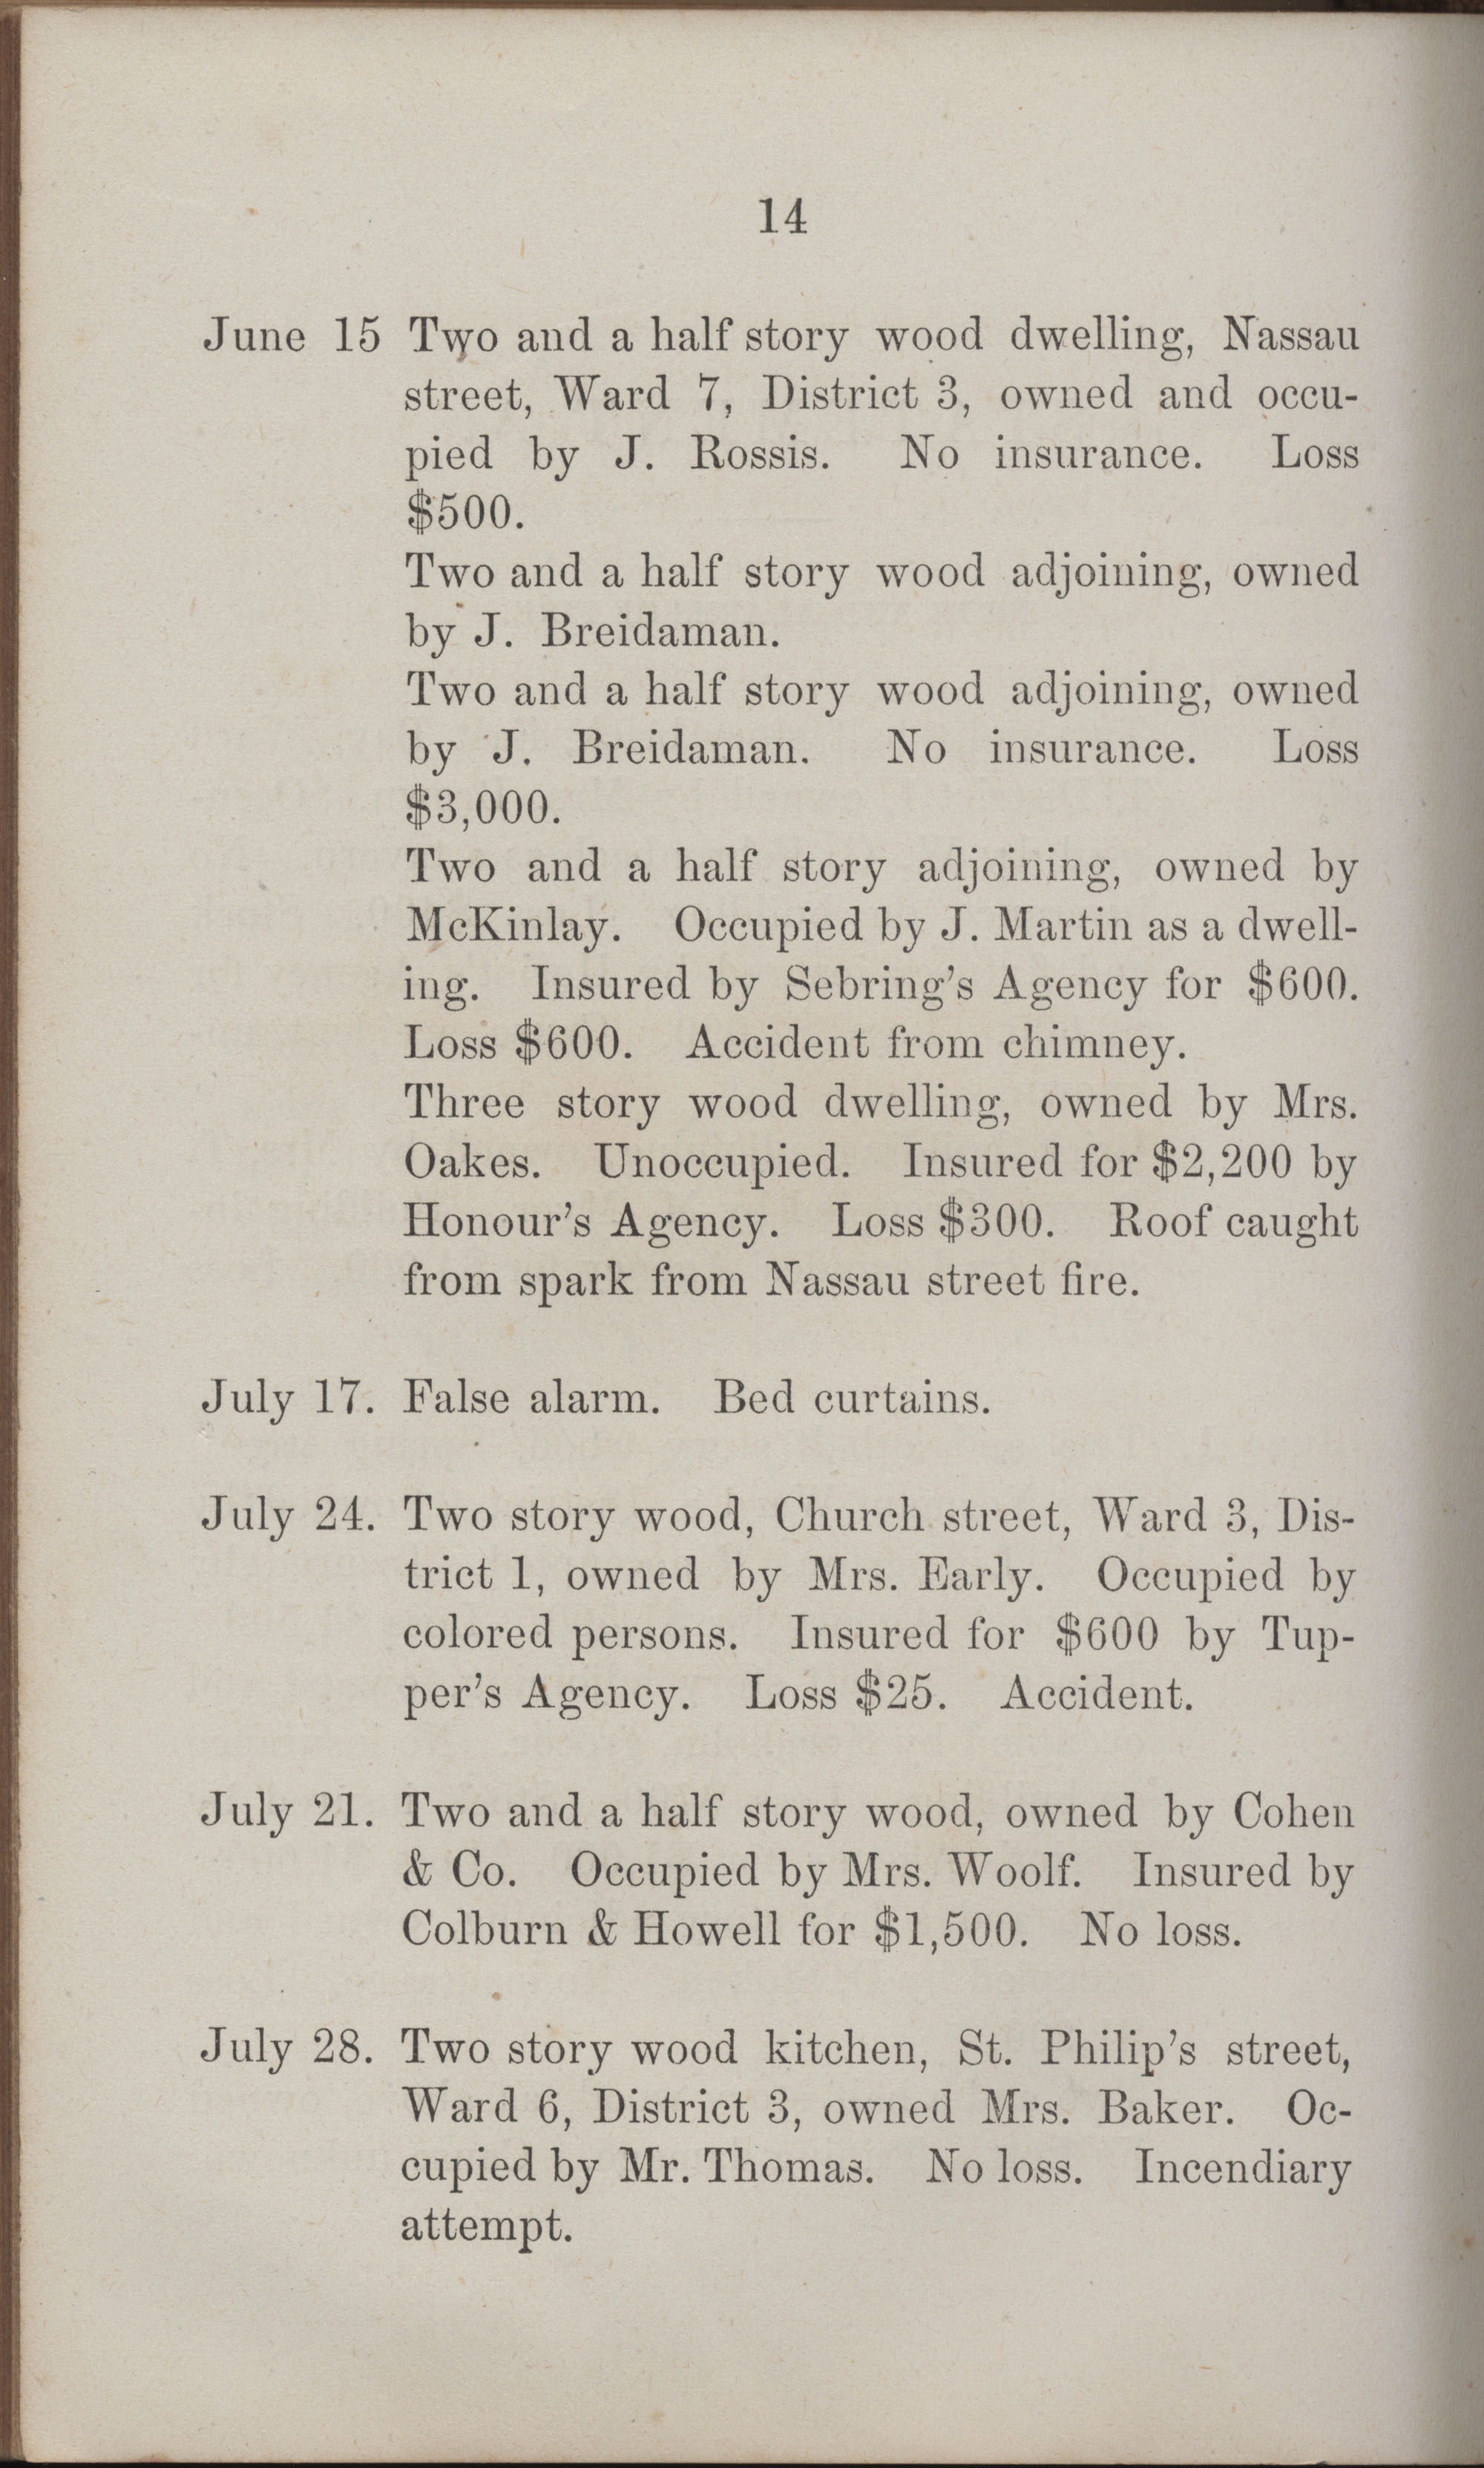 Annual Report of the Chief of the Fire Department of the City of Charleston, page 409